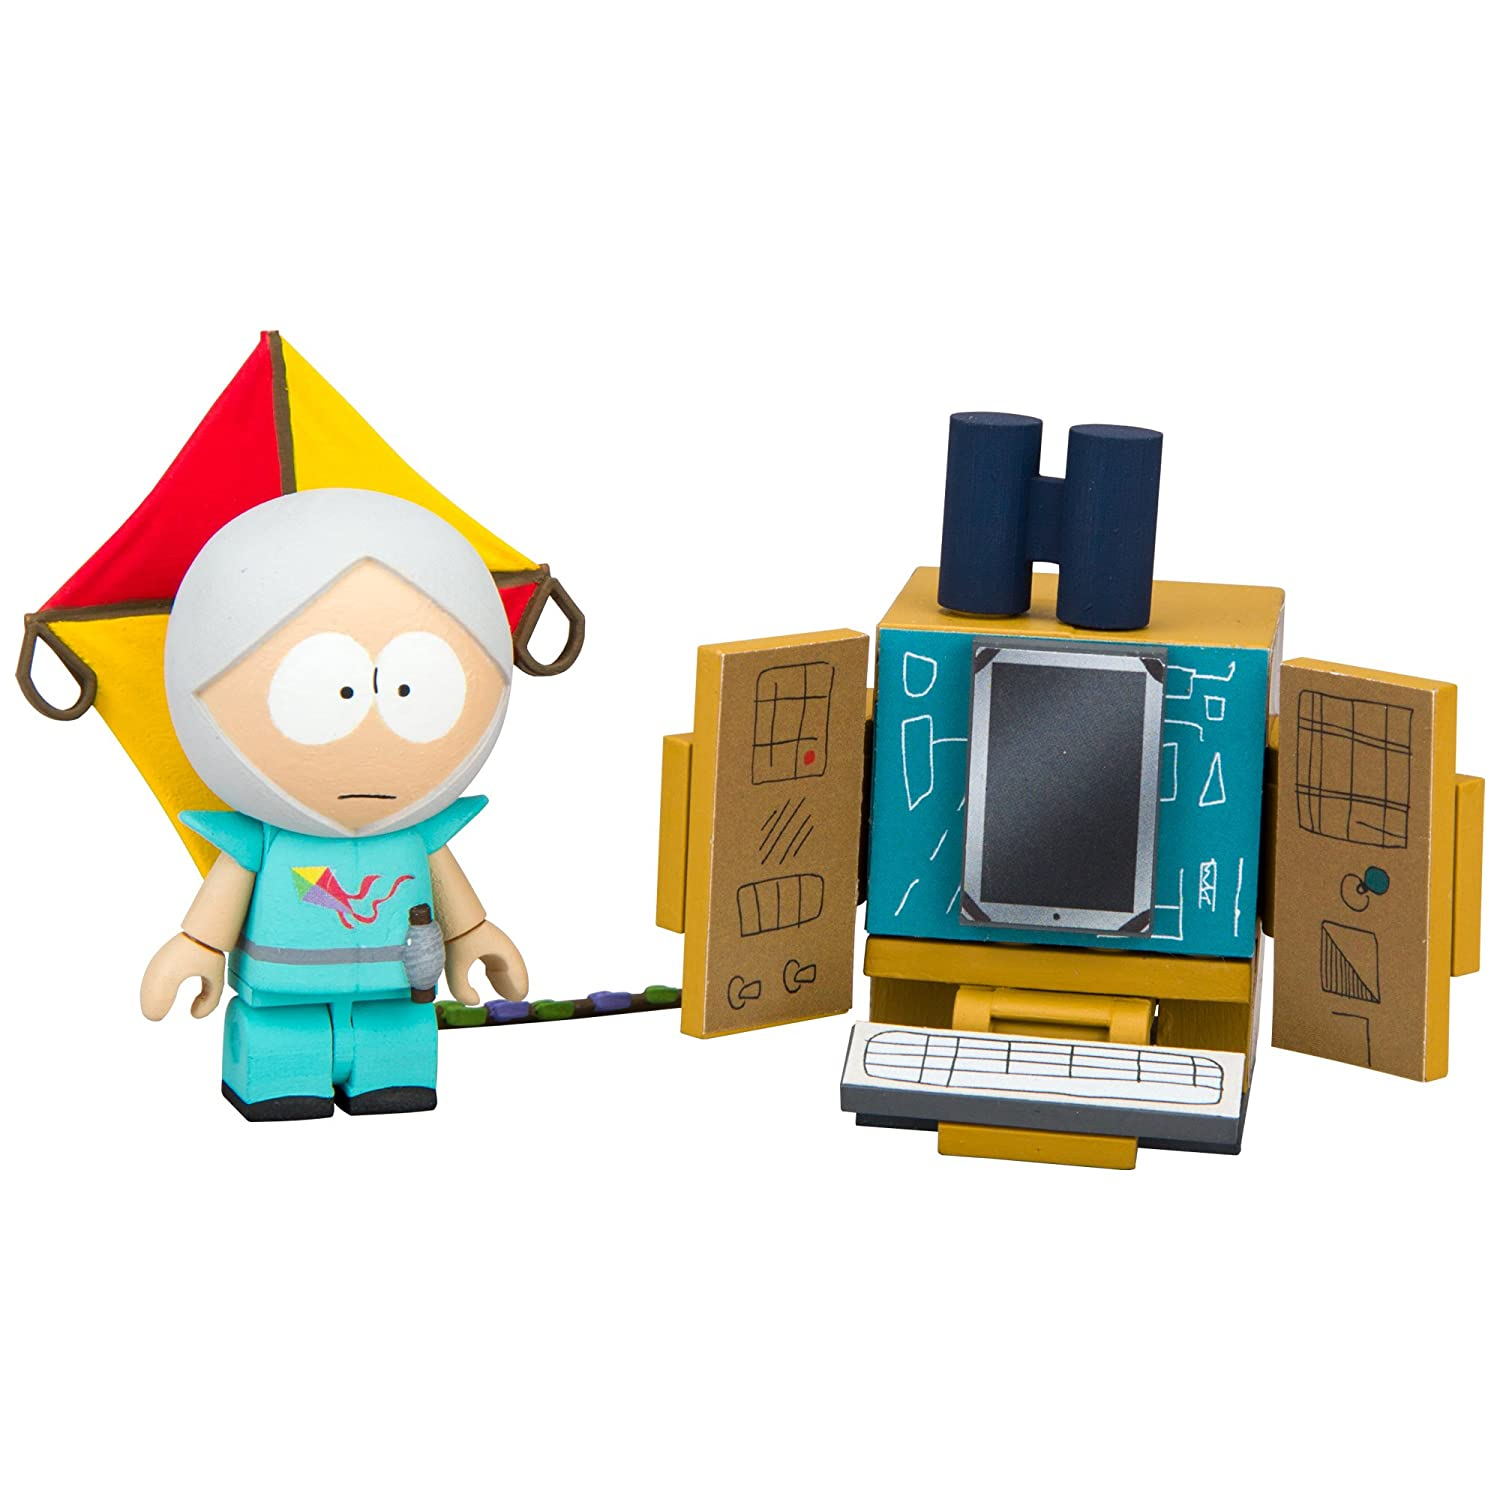 South Park 'The Human Kite' Kyle with Supercomputer Micro Construction Set Playset Mcfarlane Toys 12861-1